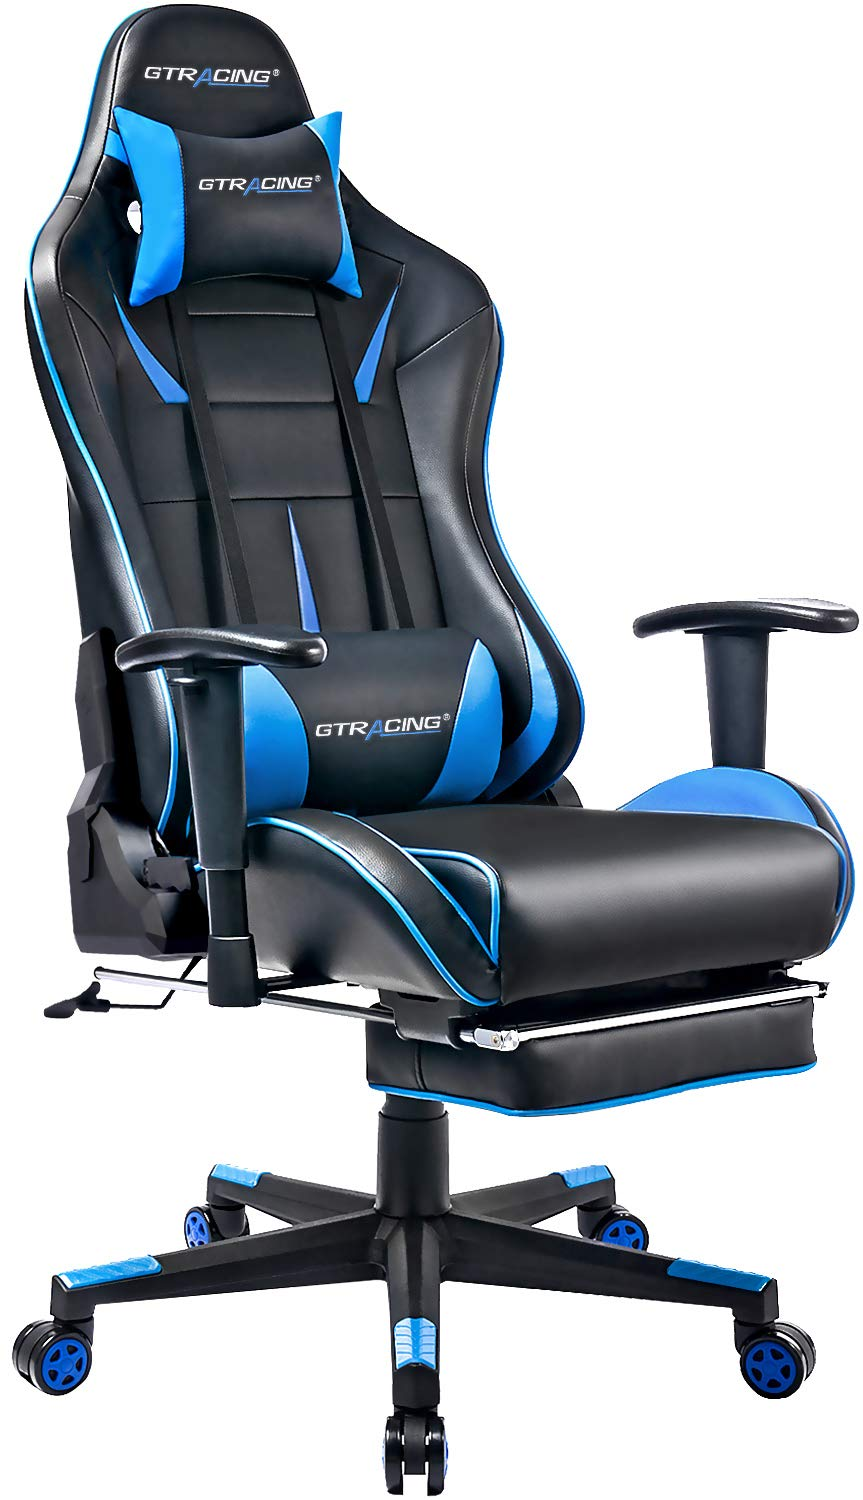 GTRACING Gaming Chair with Speakers【Patented】 Bluetooth Audio Racing Chair Heavy Duty Ergonomic Multi-Function E-Sports Chair for Pro Gamer GT899 Blue